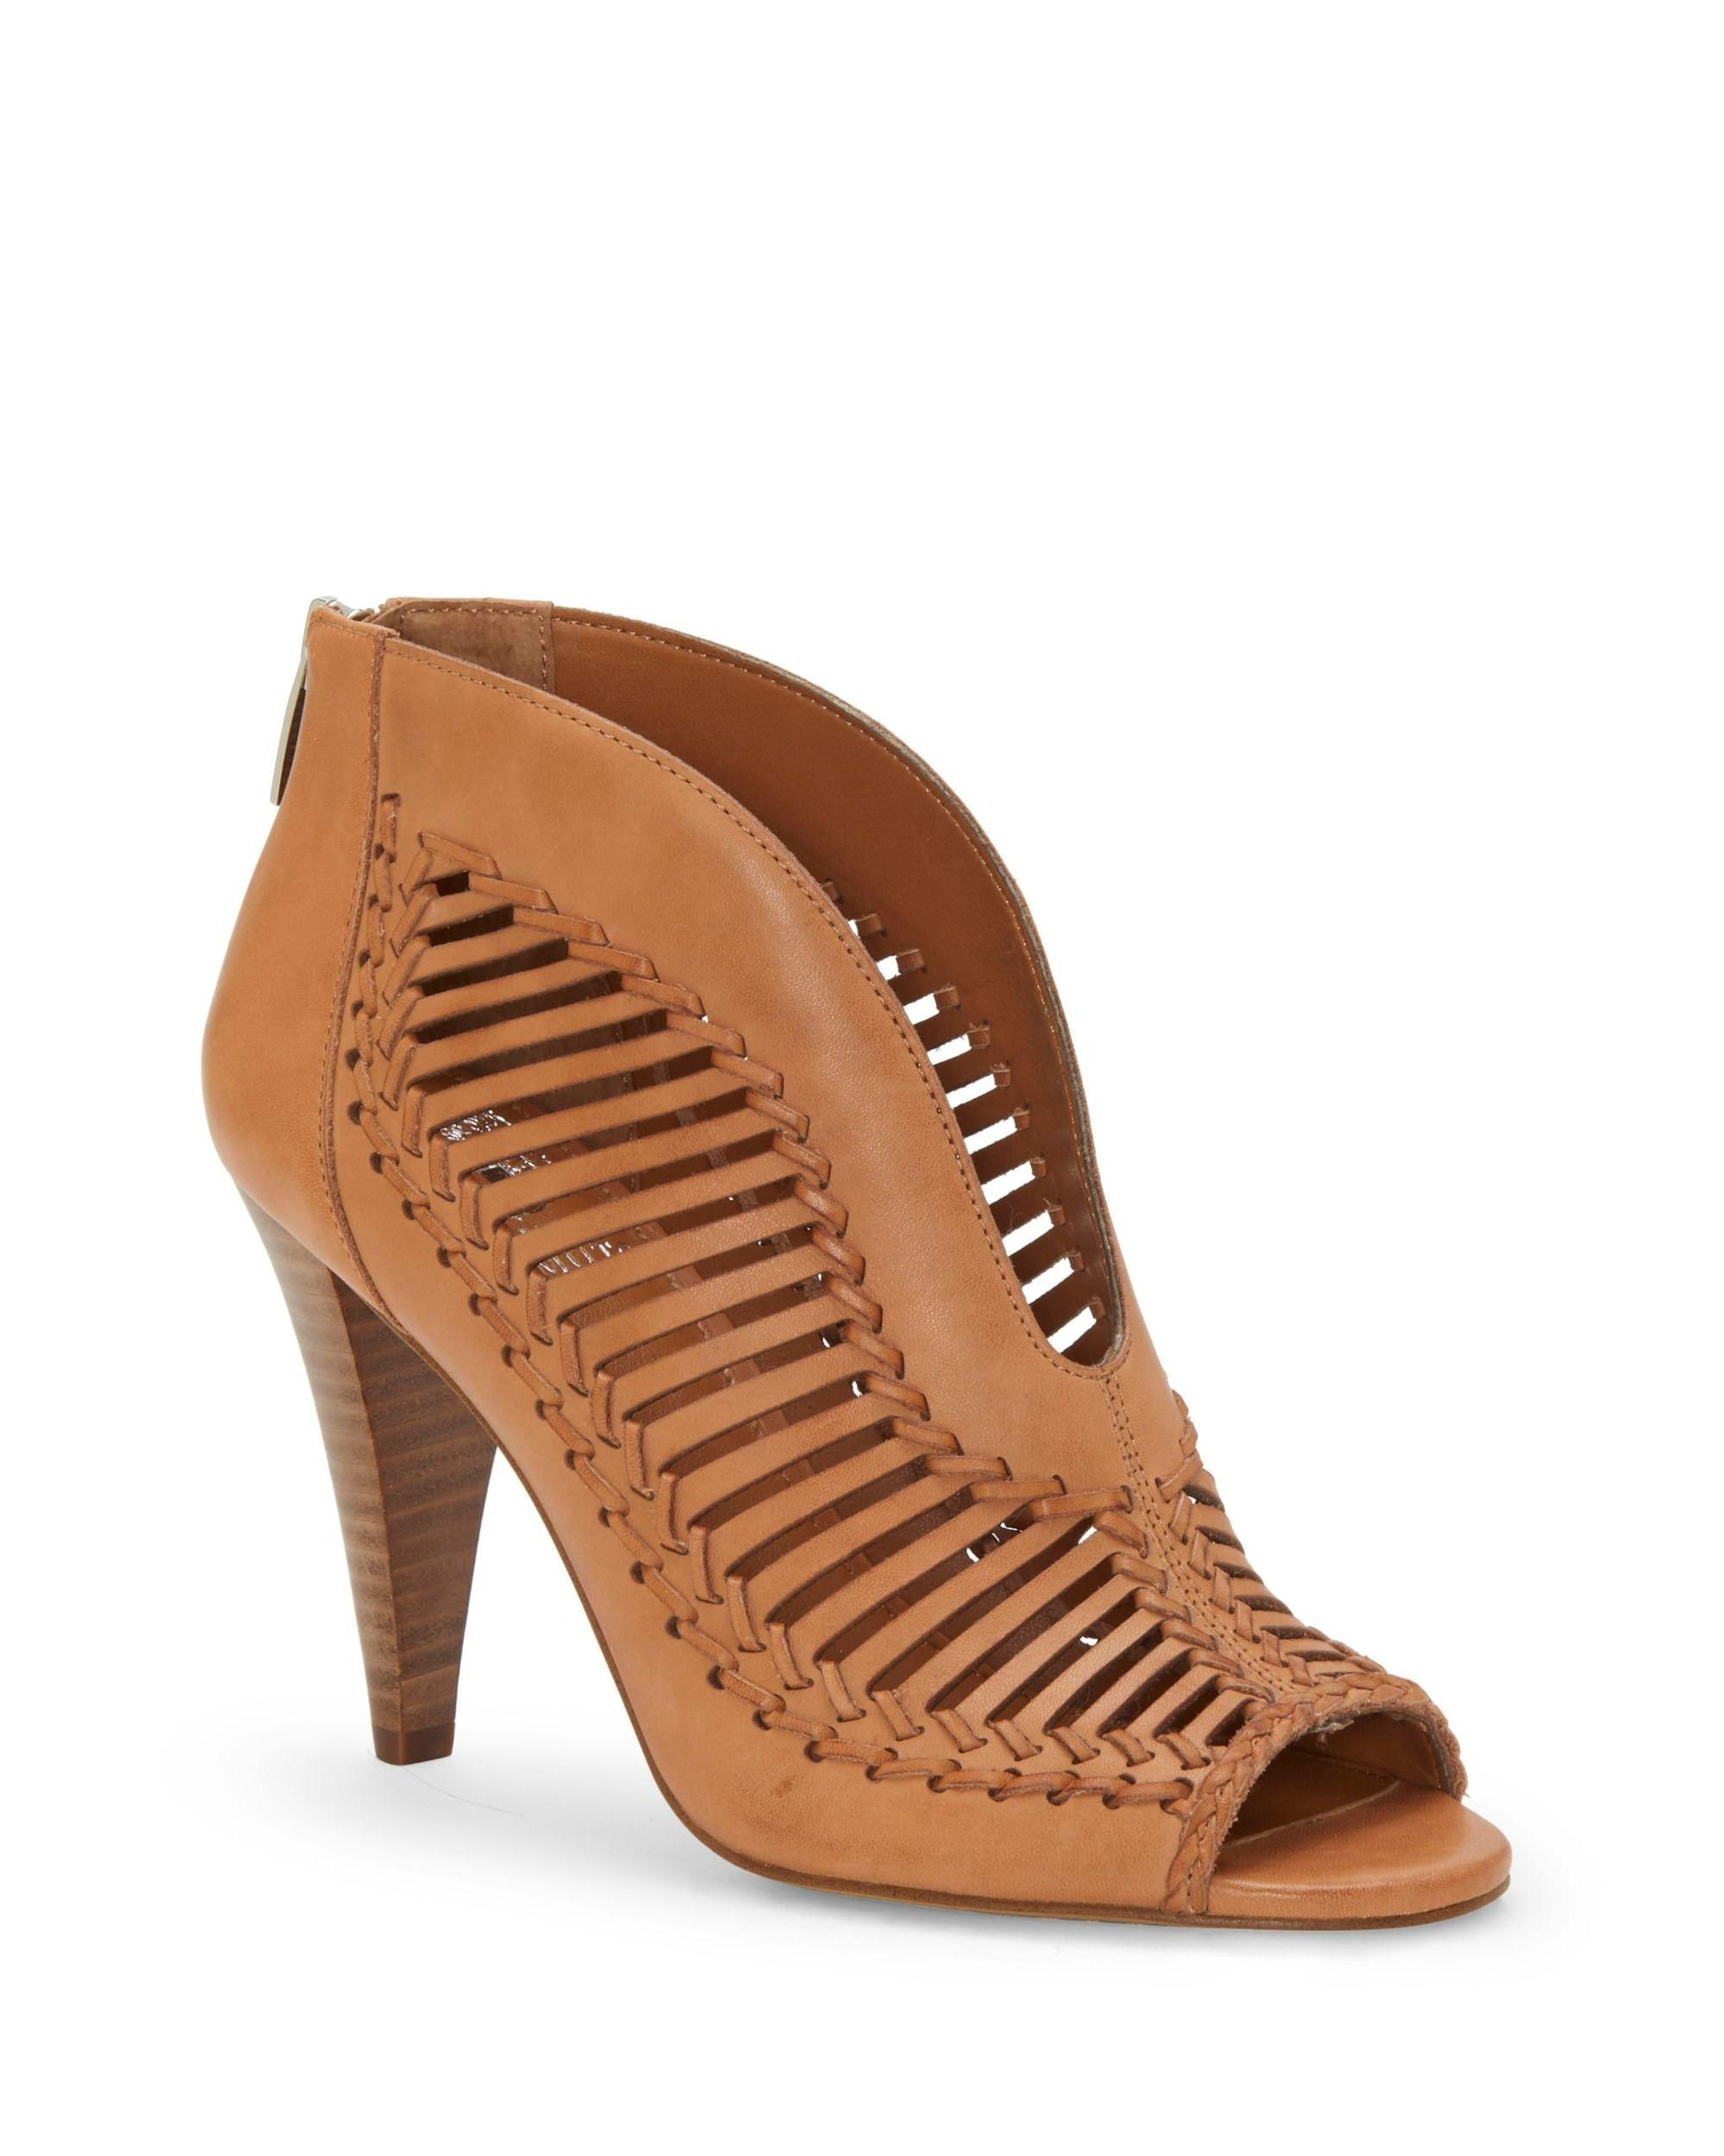 d1c13b0aee71 Lyst - Vince Camuto Acha Sandal in Brown